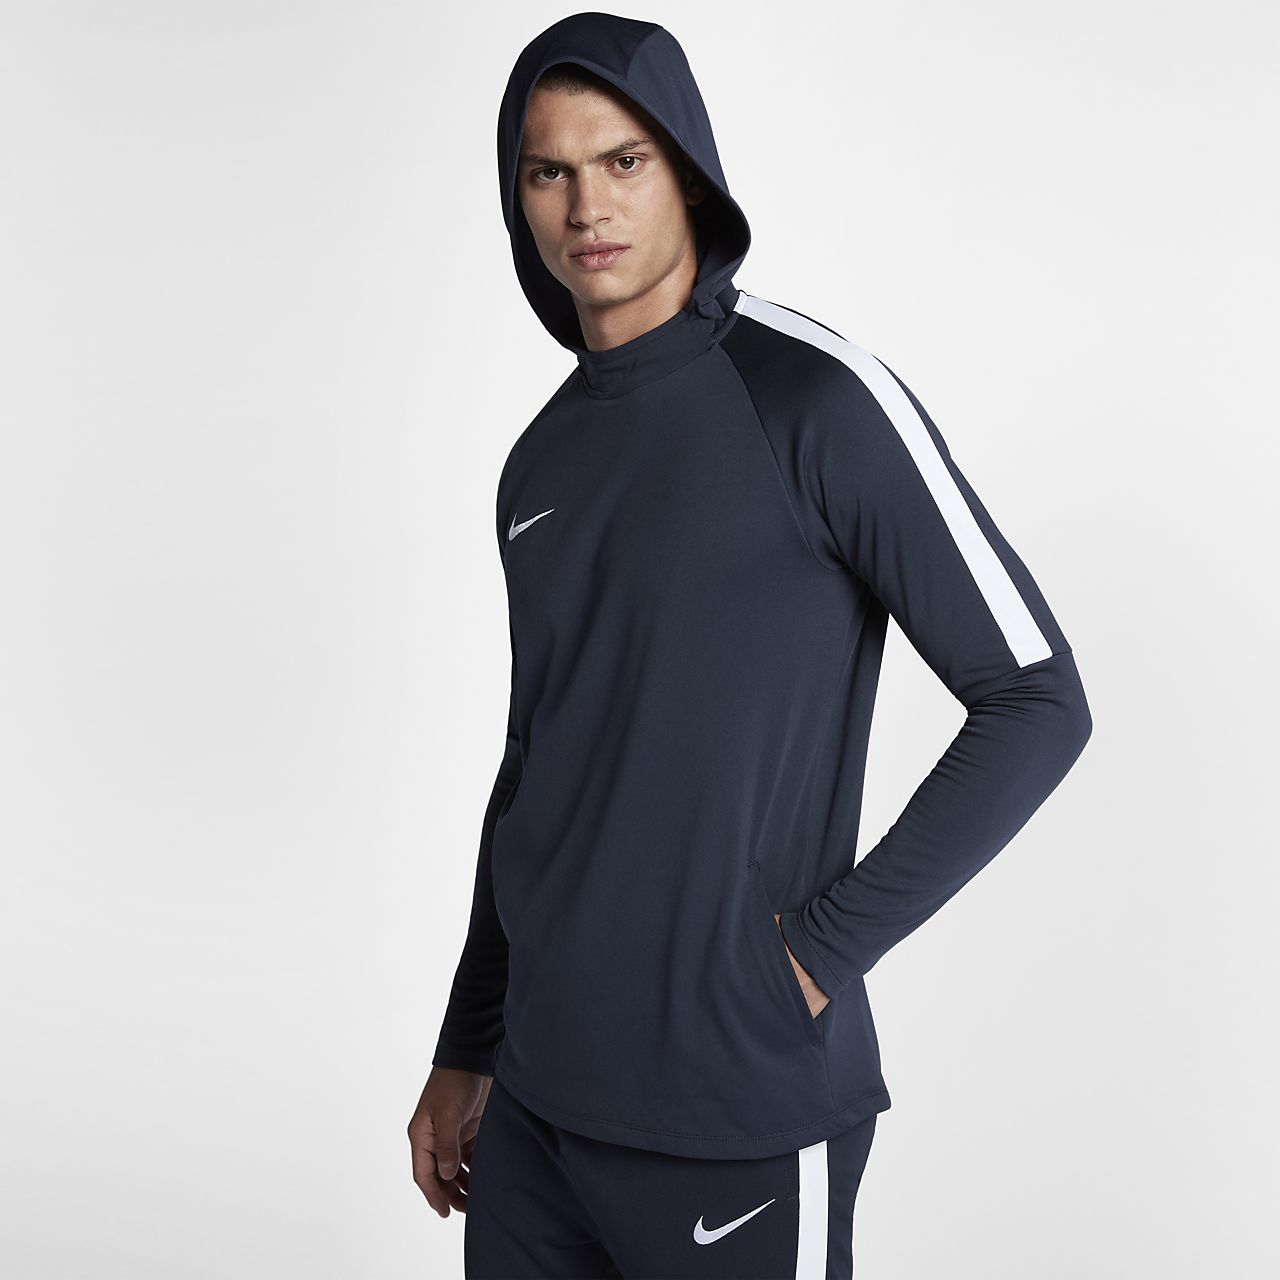 4471c4466d98 Nike Dri-FIT Academy Men s Pullover Football Hoodie. Nike.com NO